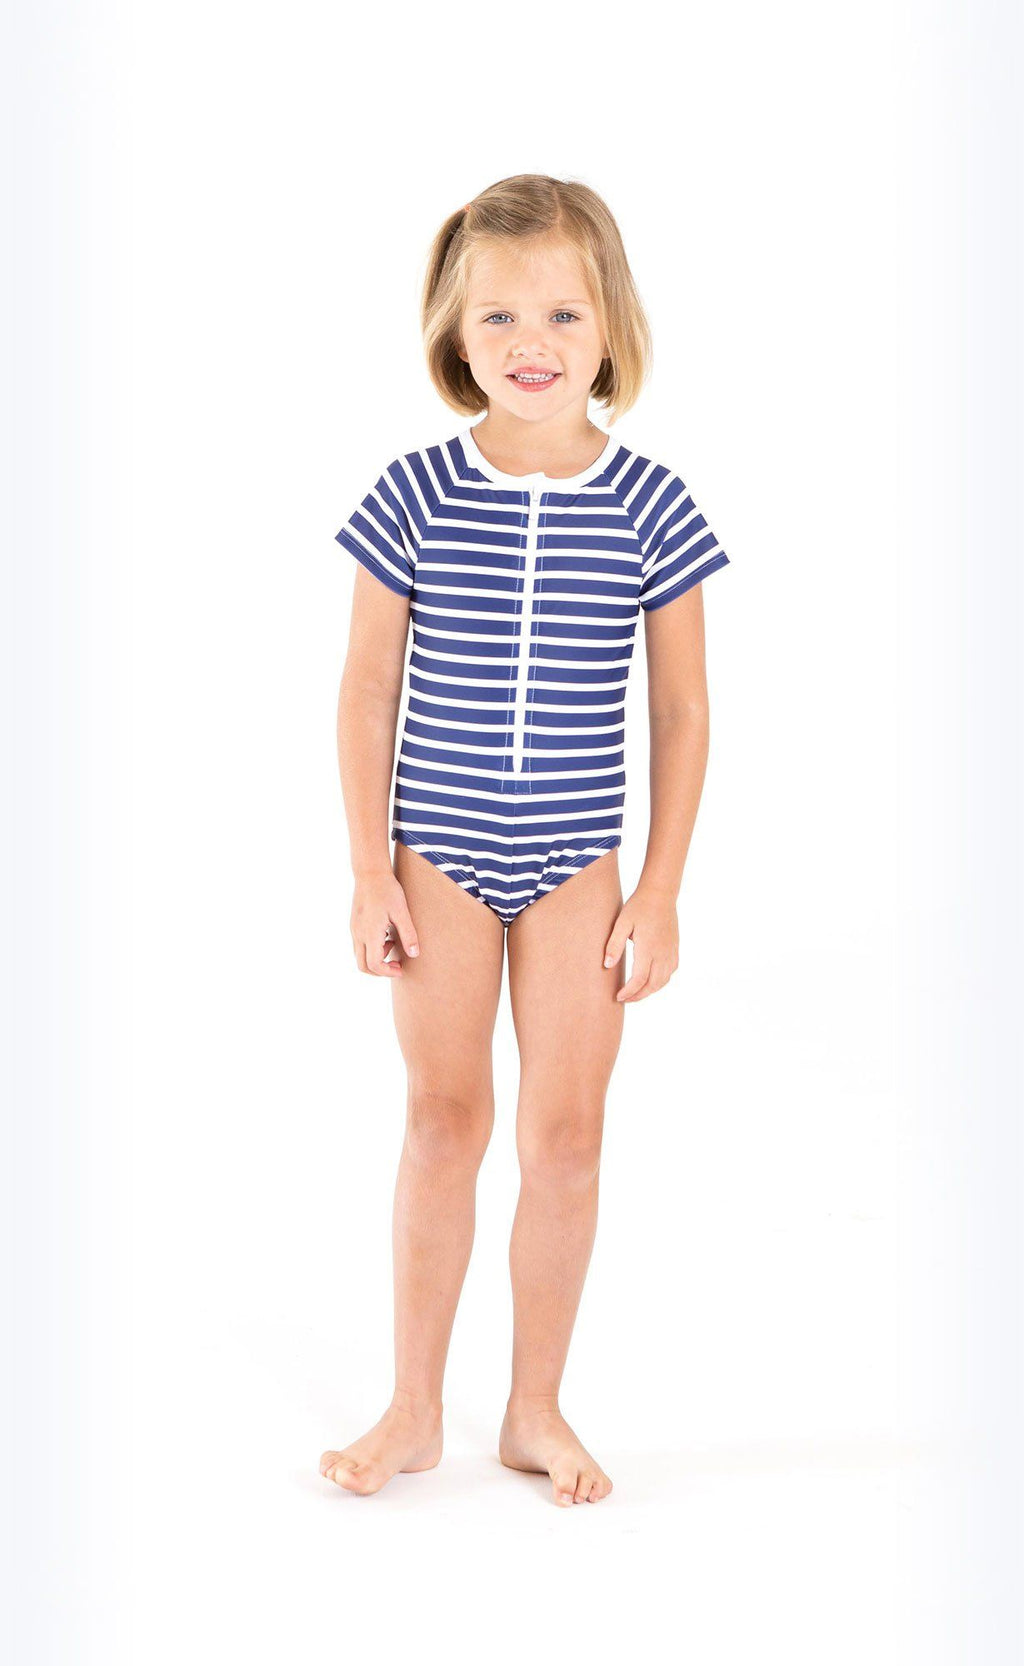 Cover Kids Short-Sleeved Swimsuit Kids Cover Clothing